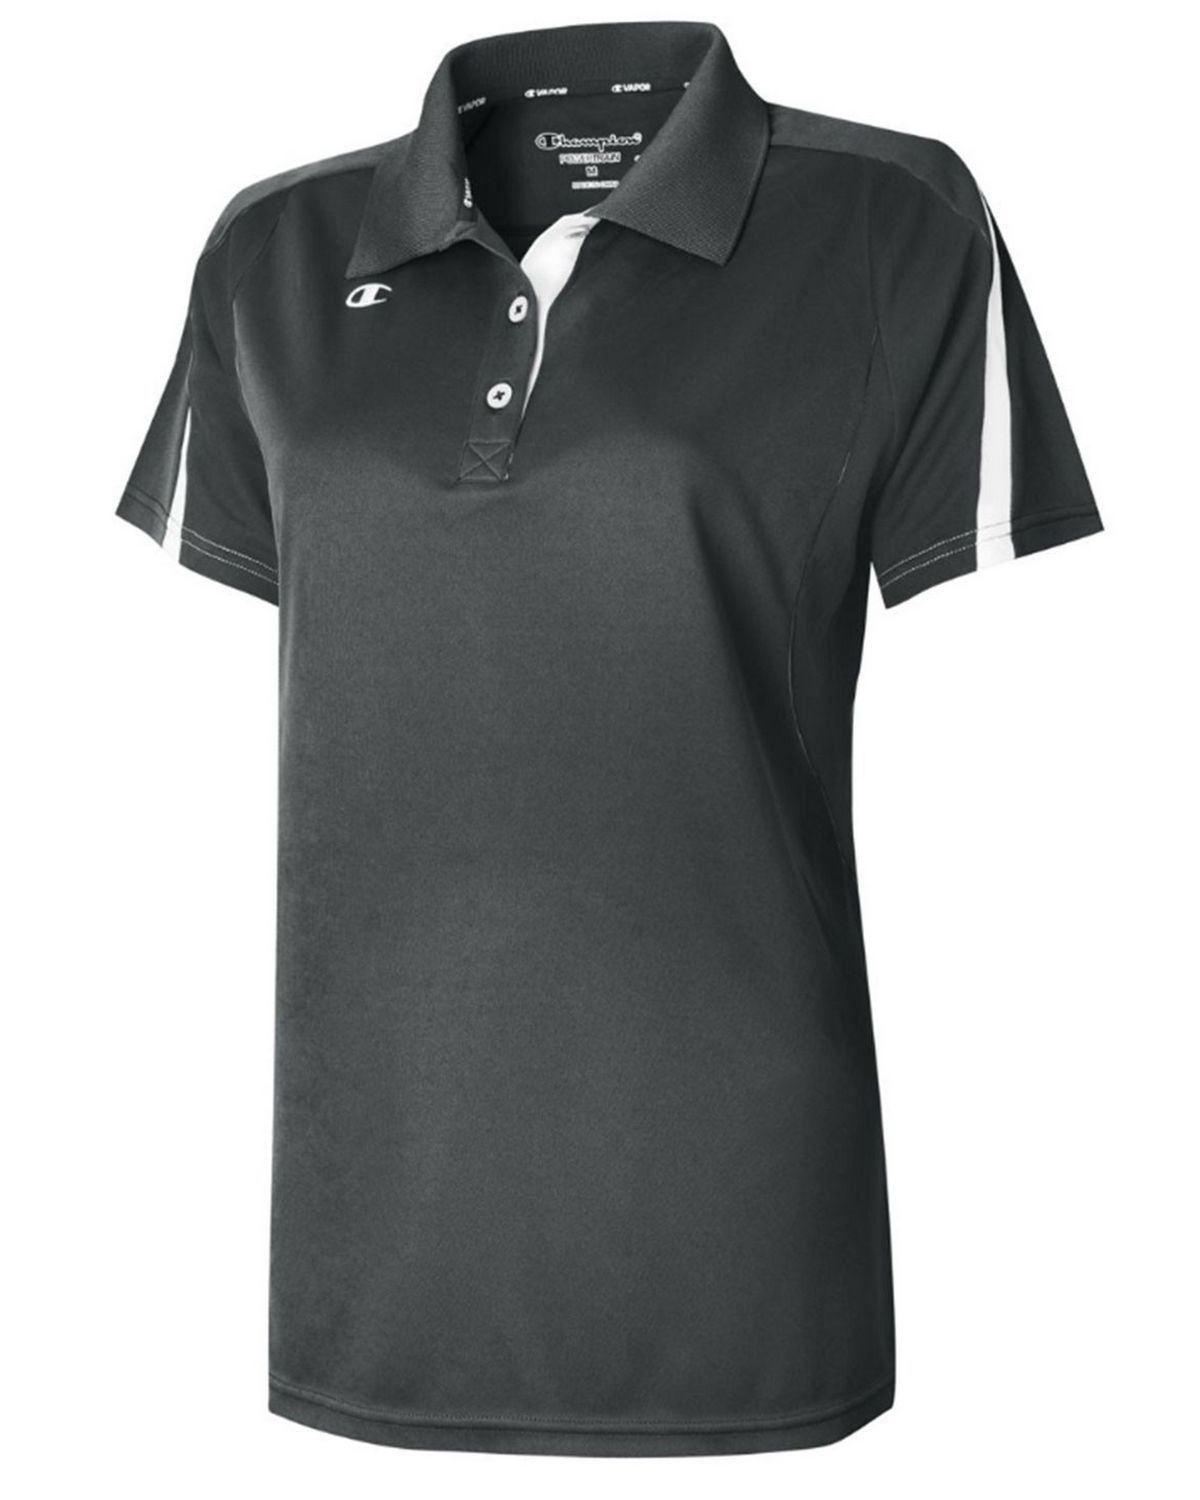 Champion H912 Women's Victory Vapor Polo Shirt - Black/White - XS #vapor